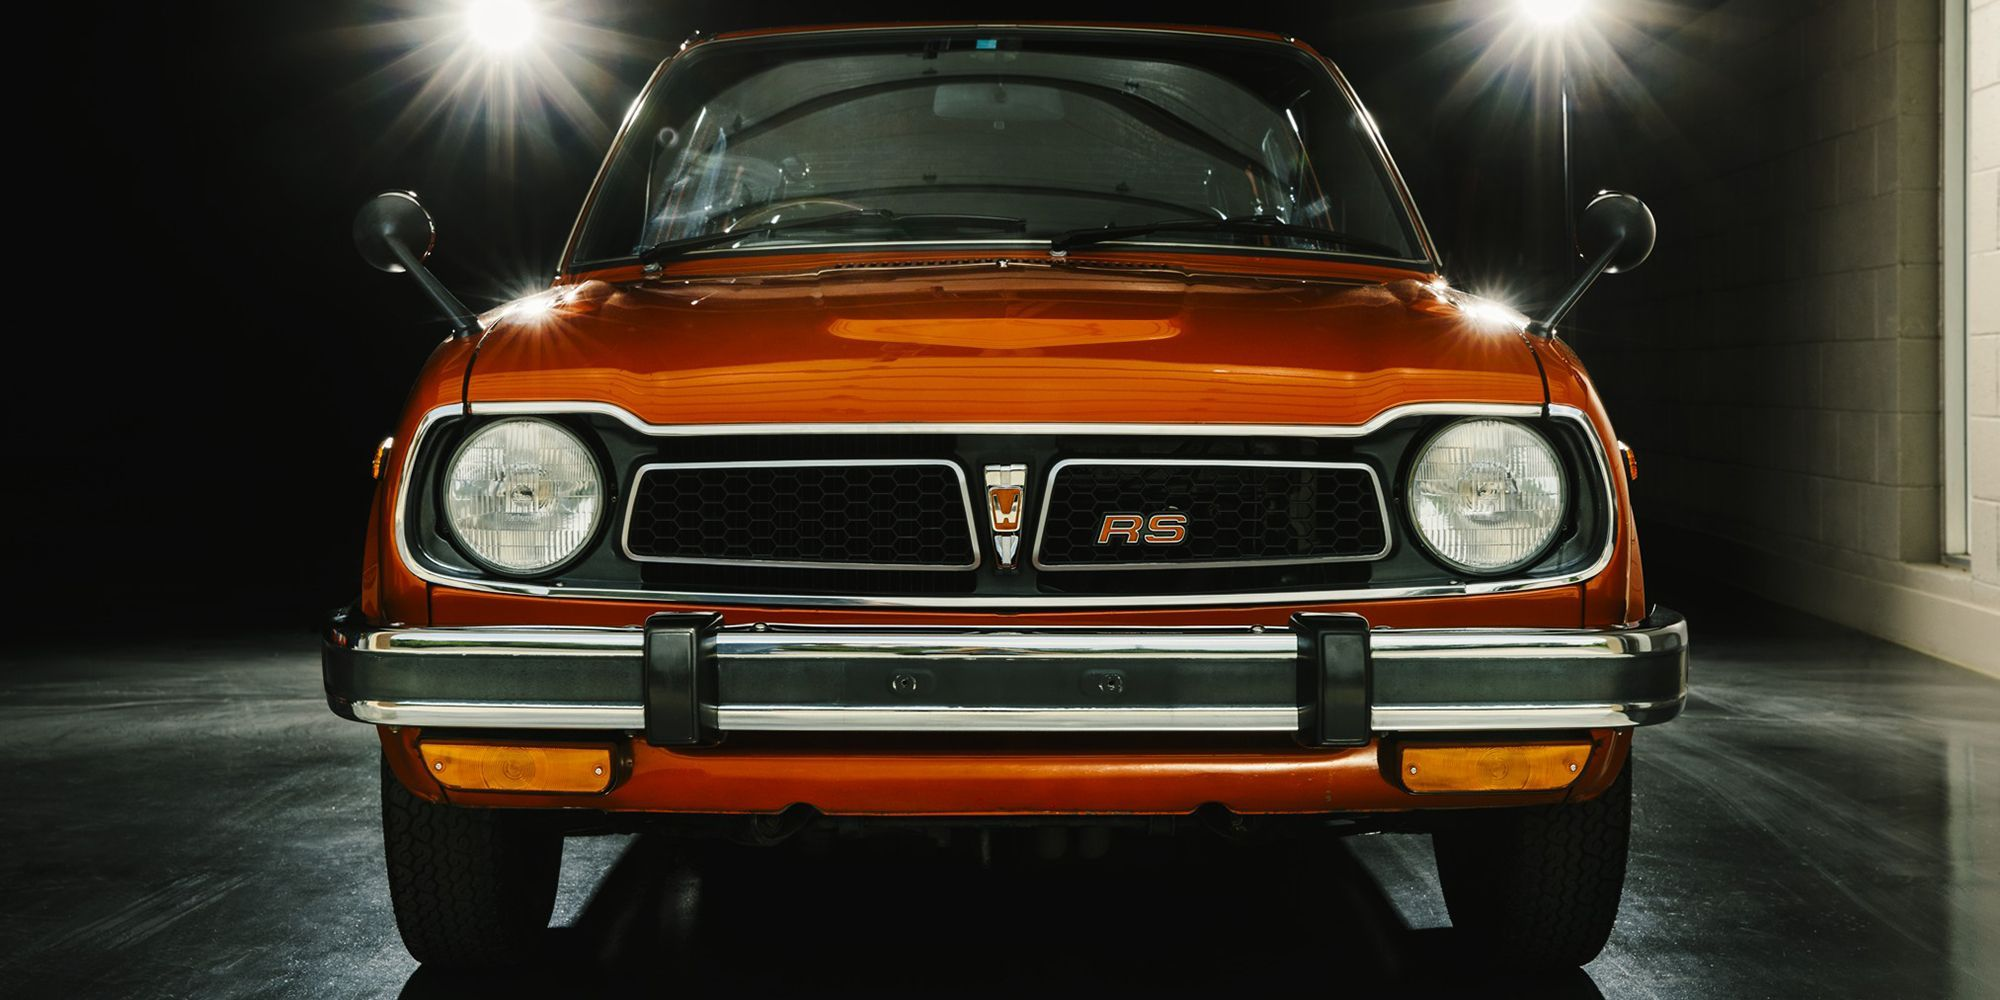 The 1975 Civic RS Is Unnecessarily Excellent The 1975